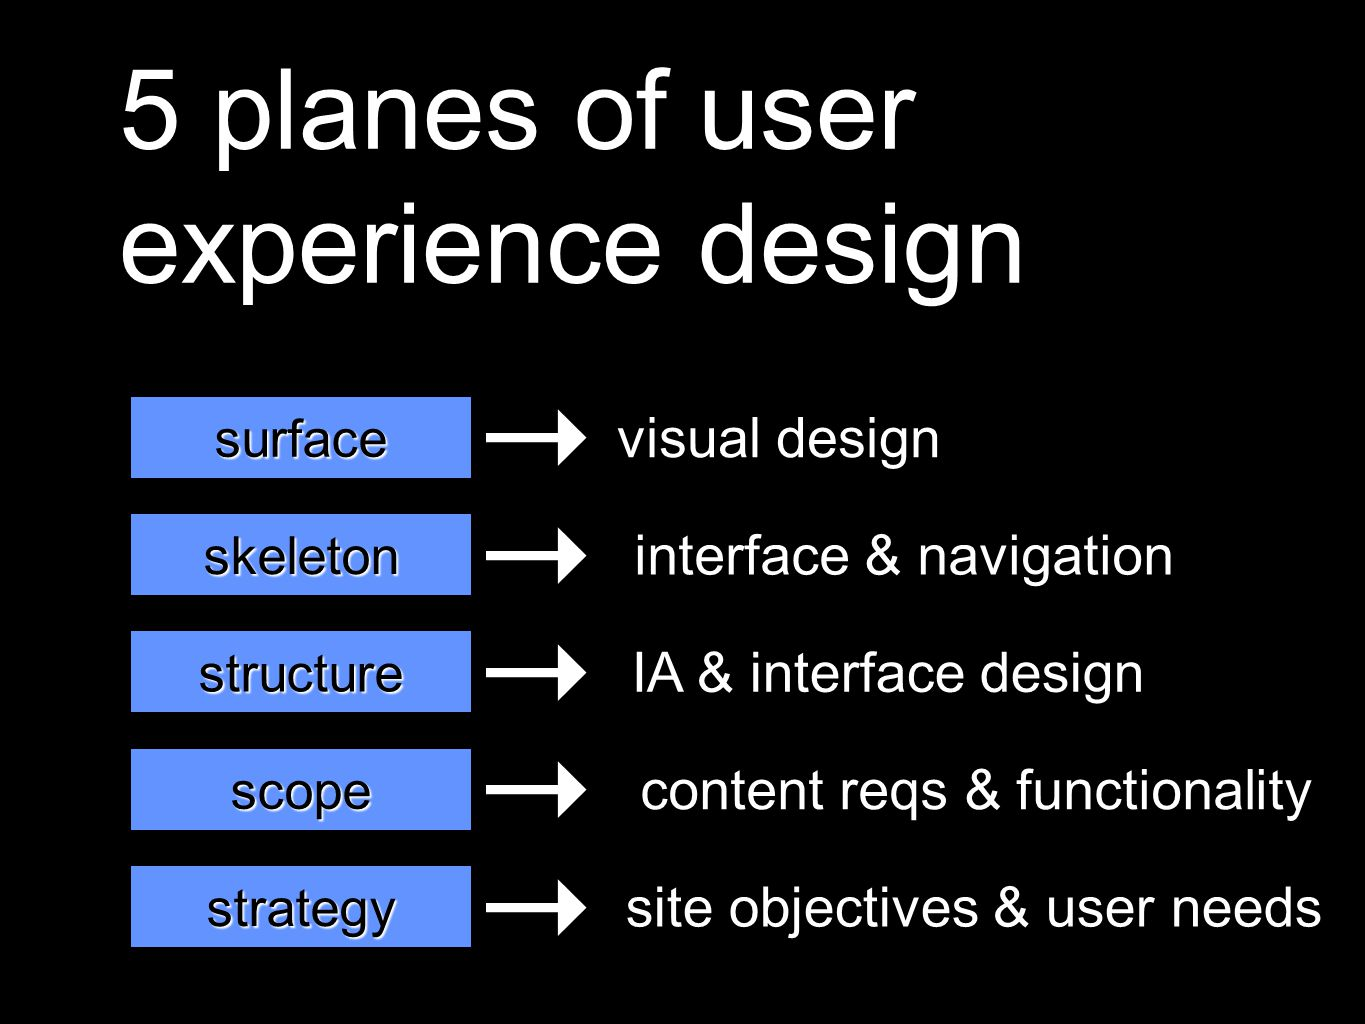 5 planes of user experience design